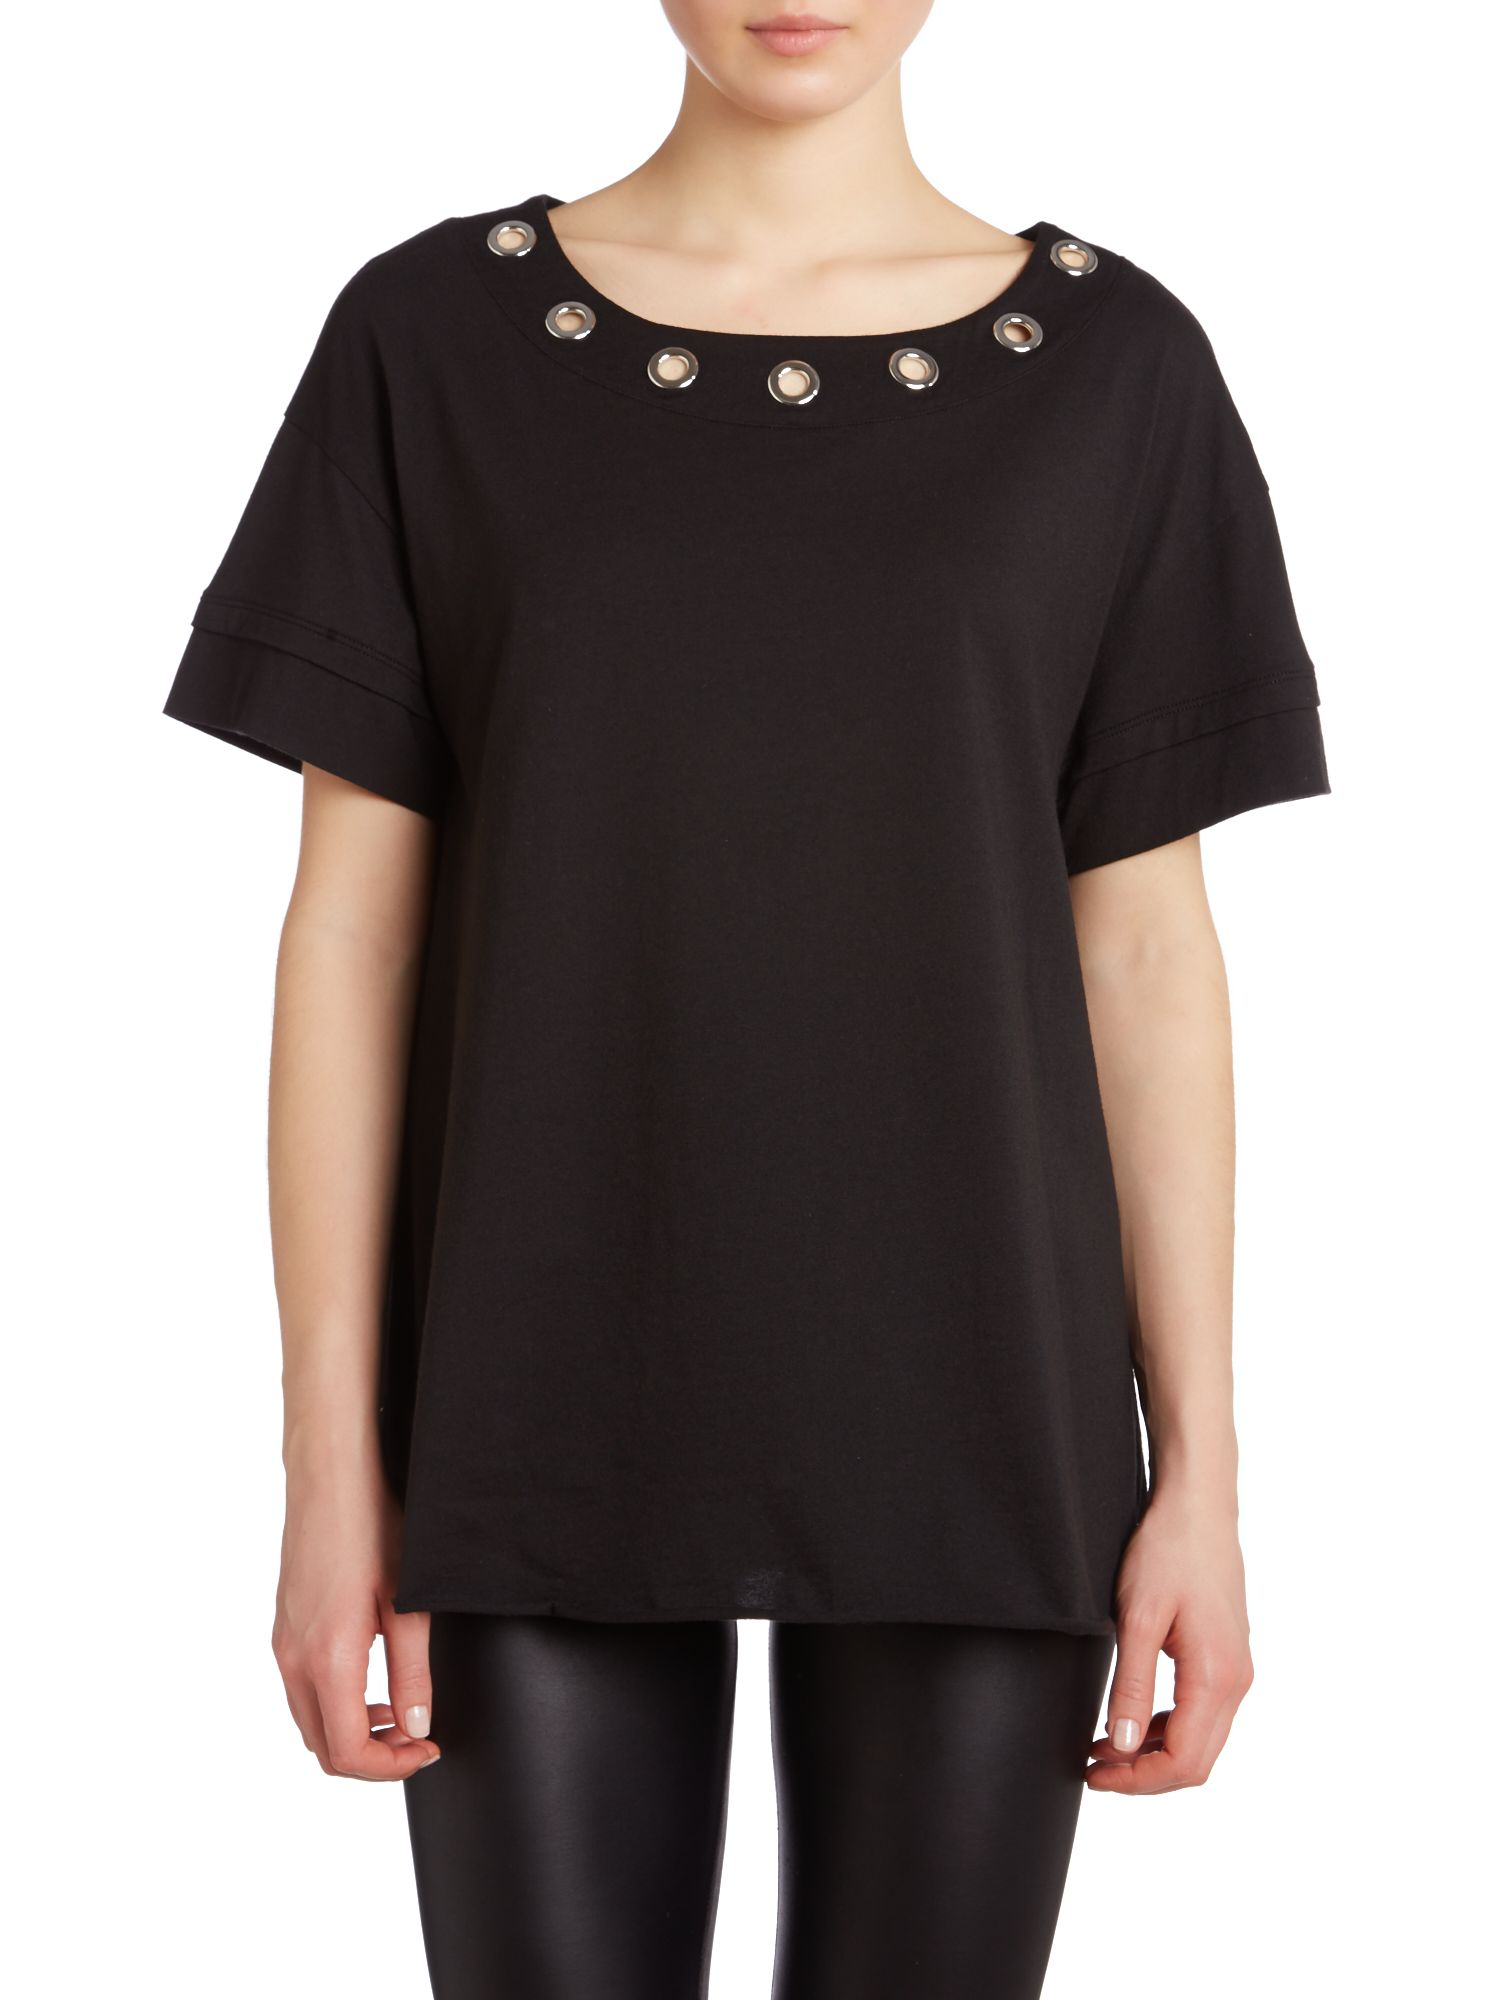 Sleeveless eyelet top with neck detail